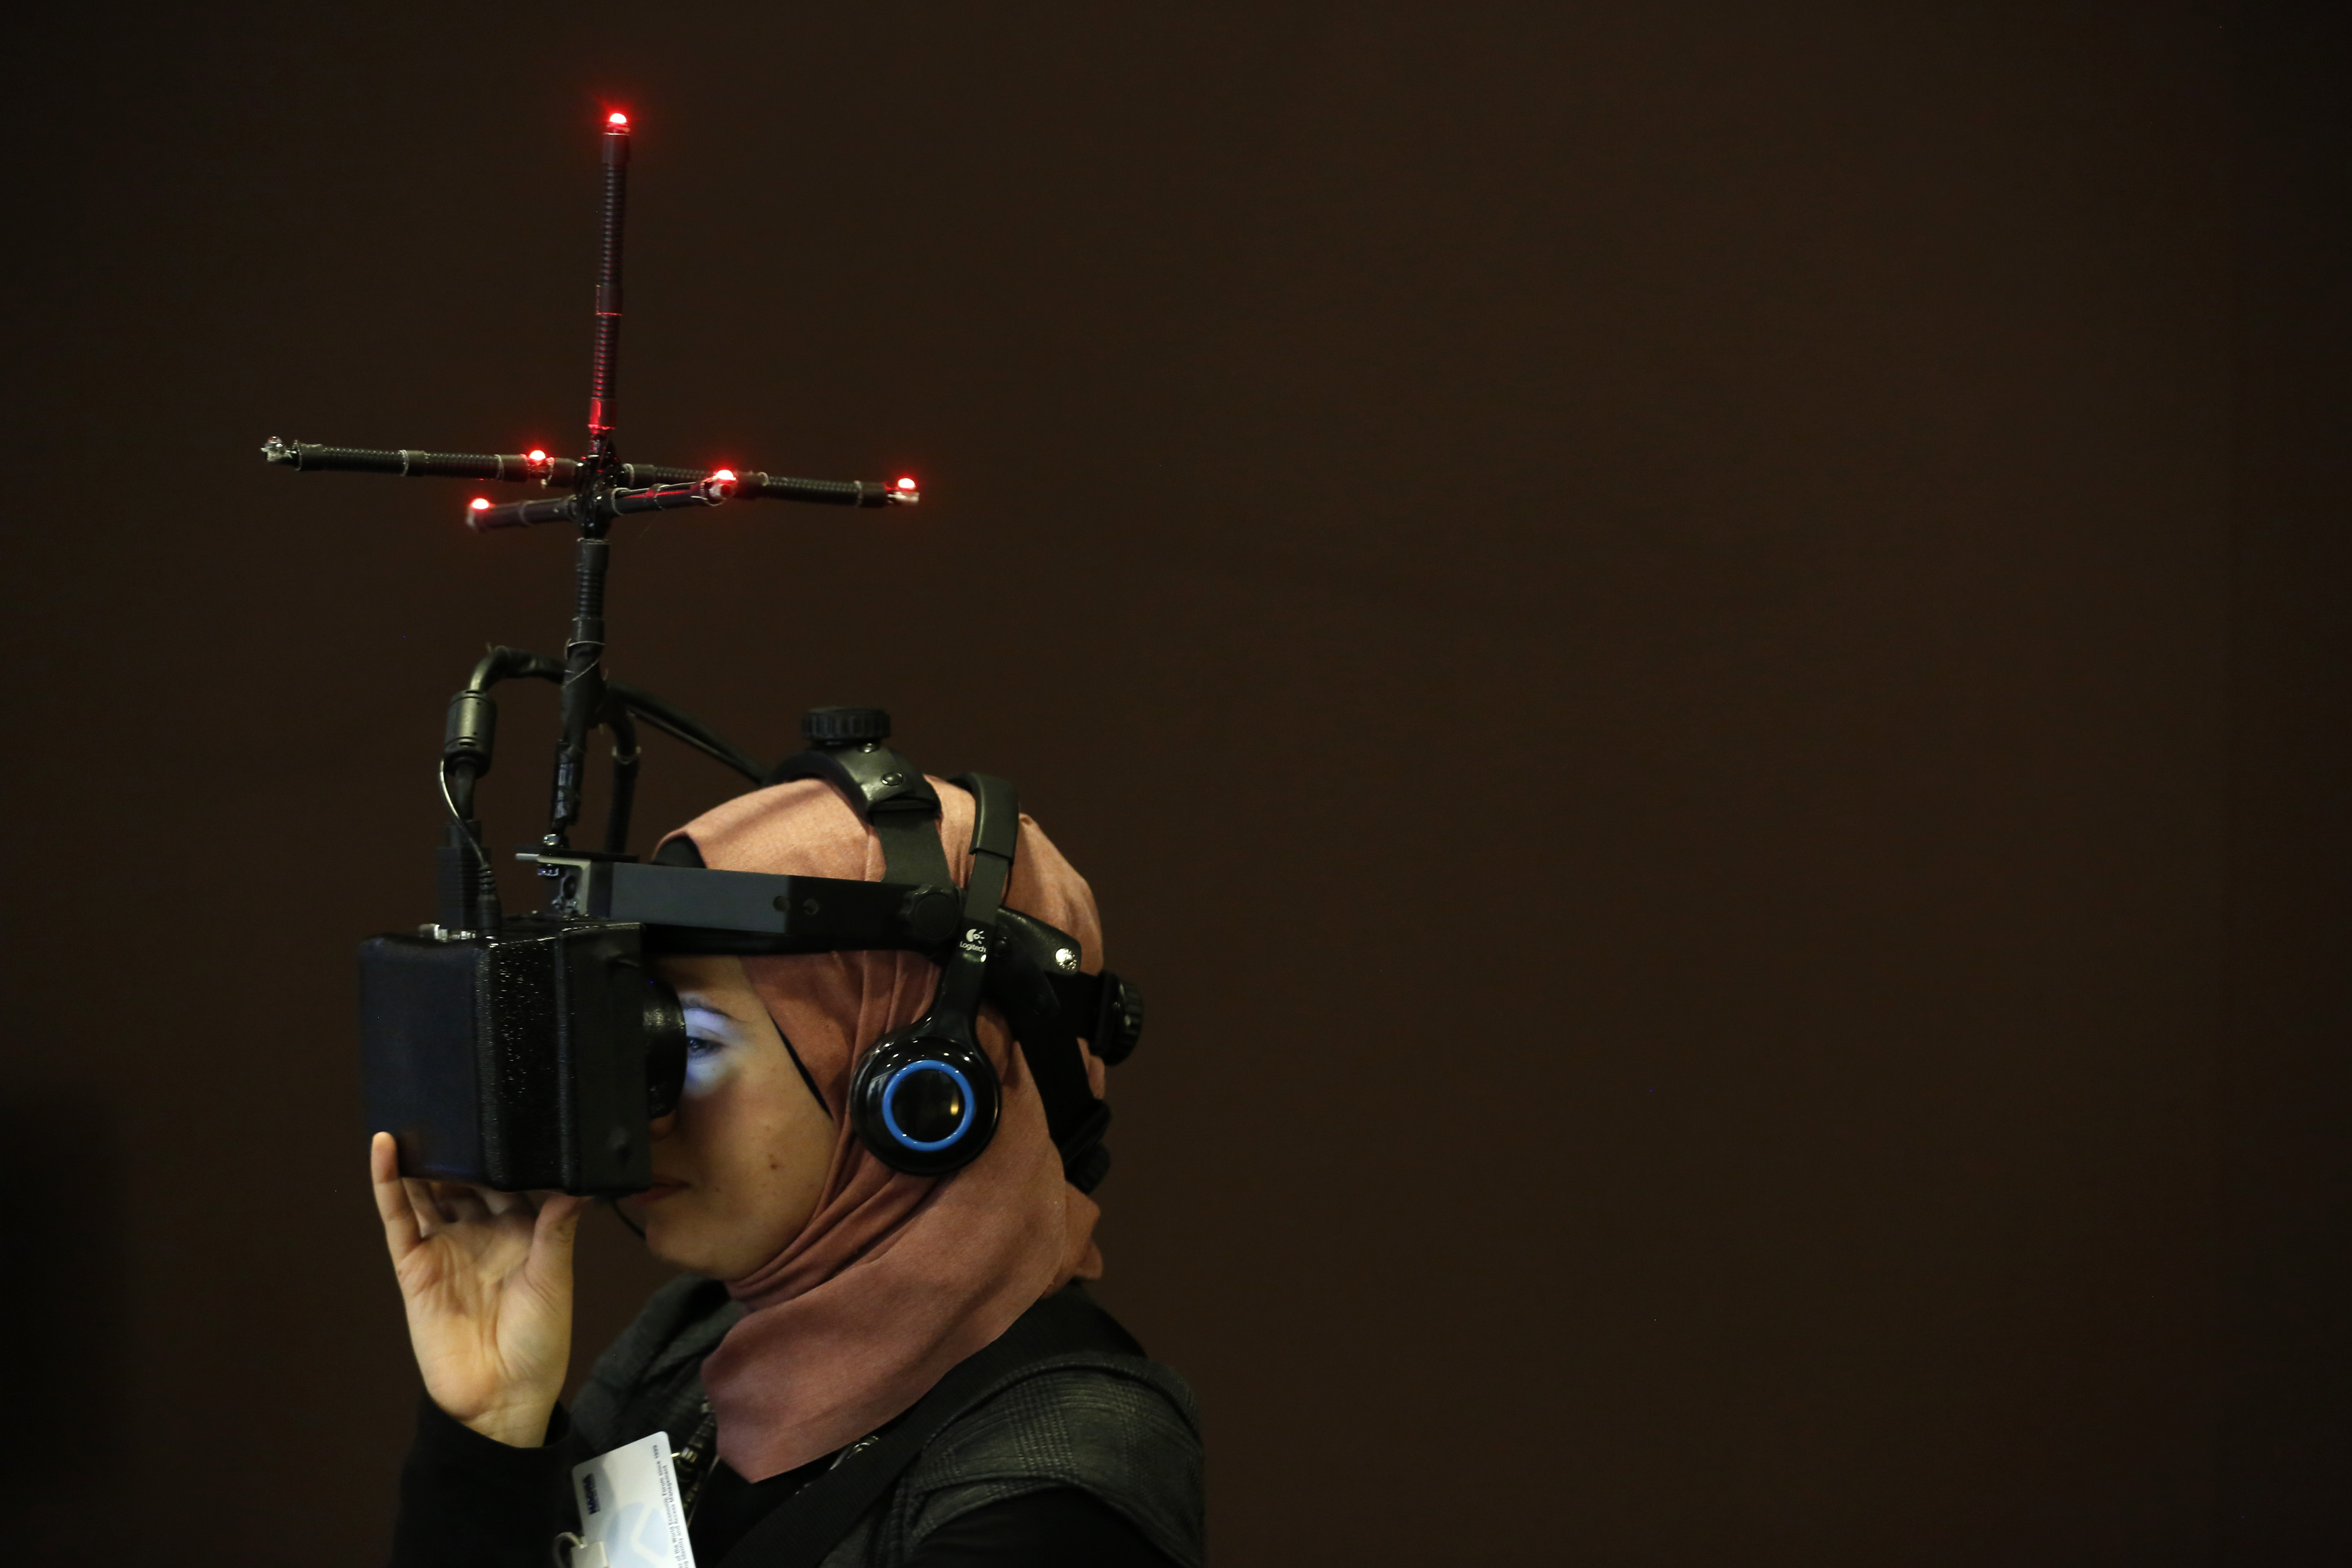 An attendee watches a virtual presentation of a bomb explosion in Syria, using a head-mounted visual display, on the opening day of the World Economic Forum (WEF) in Davos, Switzerland, Jan. 22, 2014.